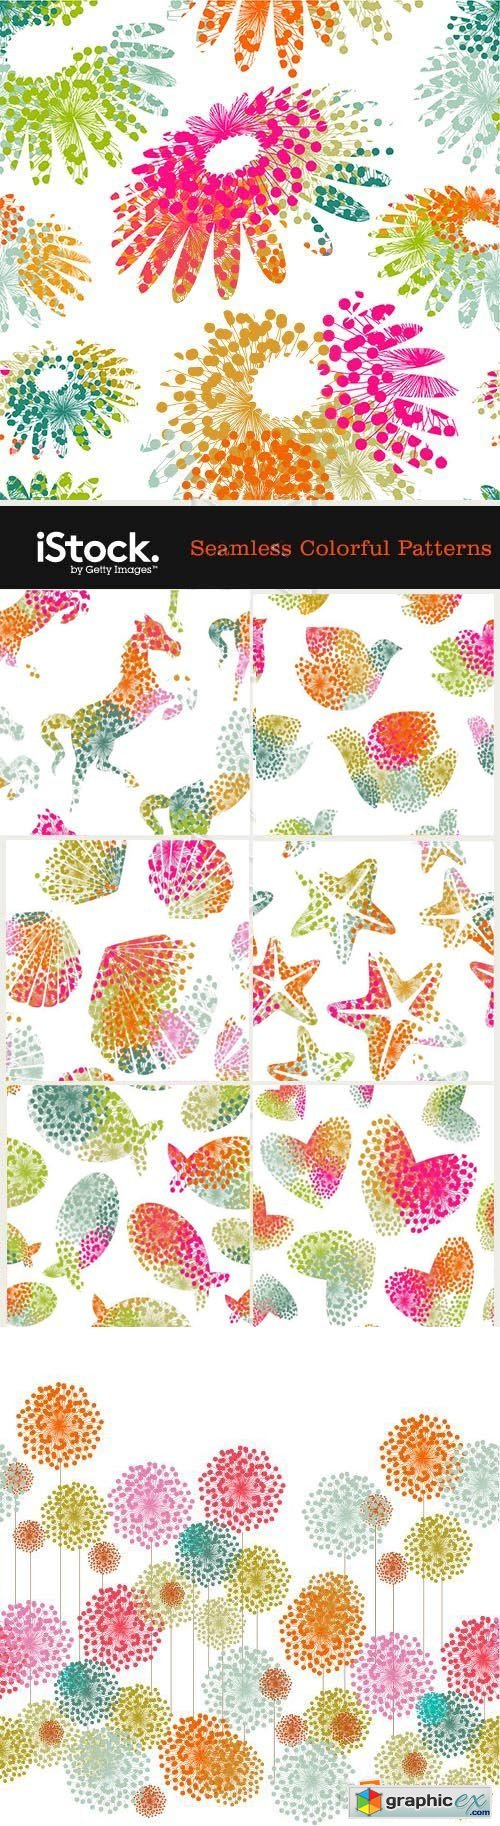 Seamless Colorful Patterns 19xEPS